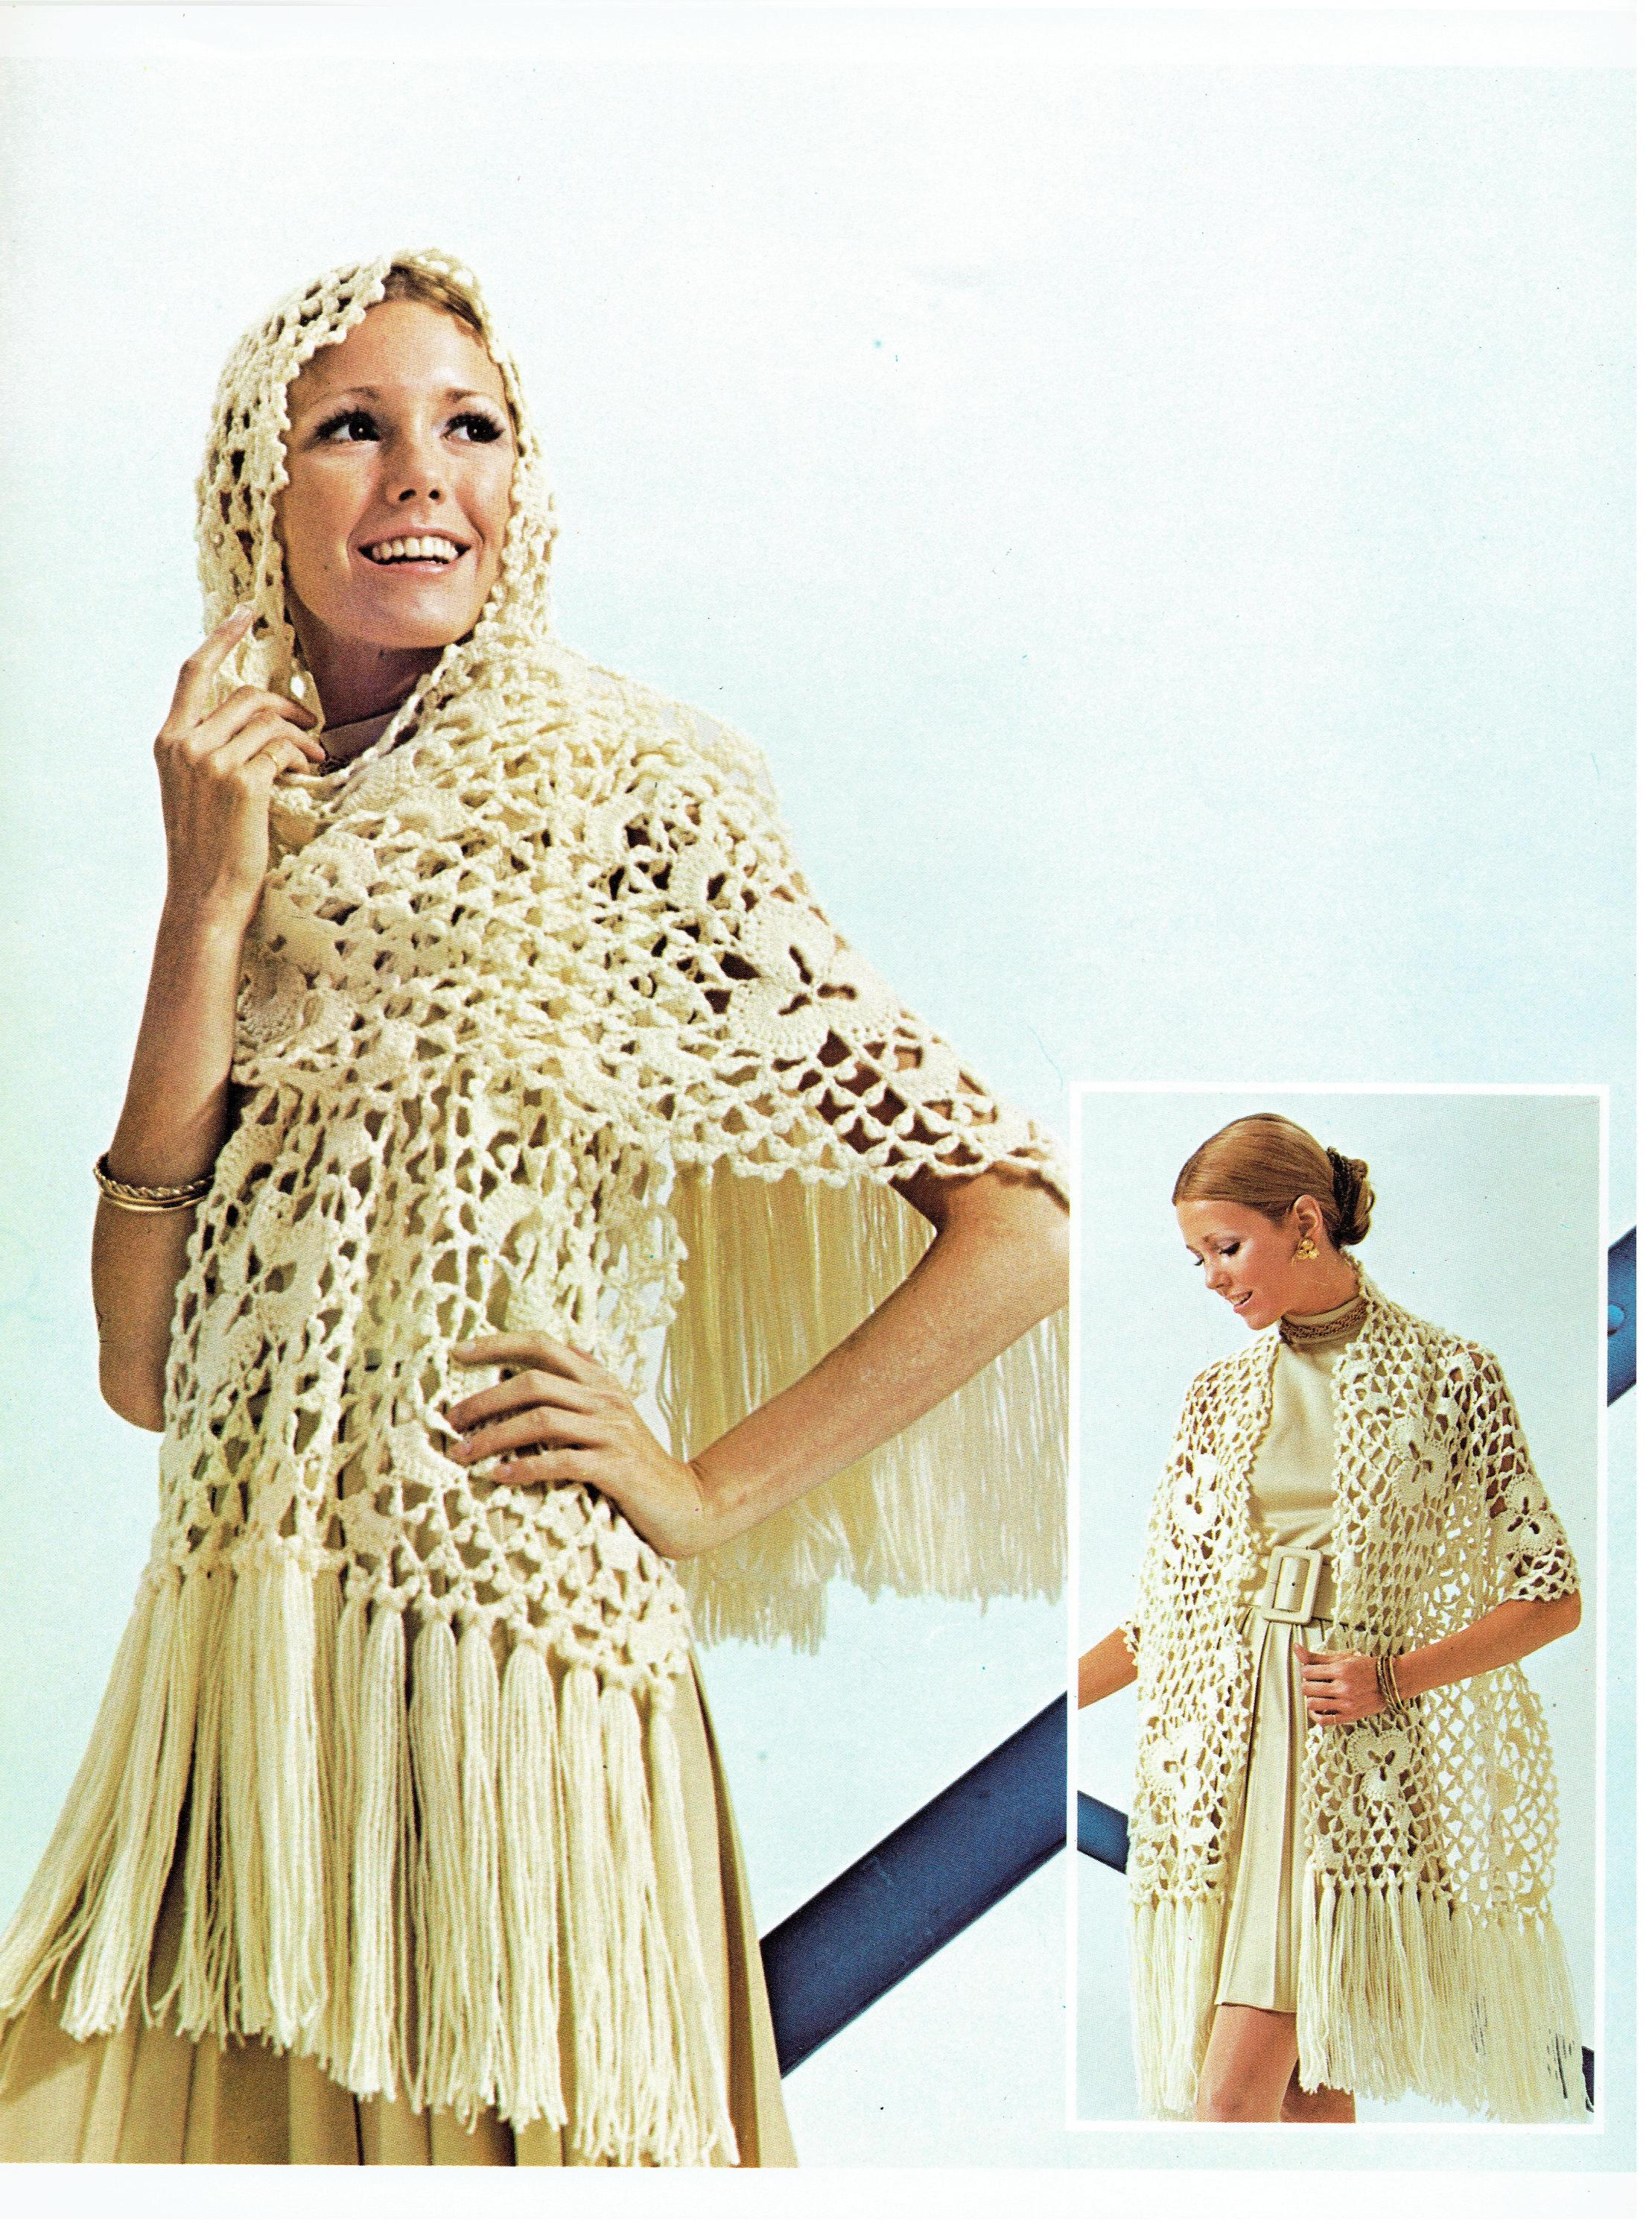 Crochet Your Own Vintage Crochet Lace Medallion Stole Pattern